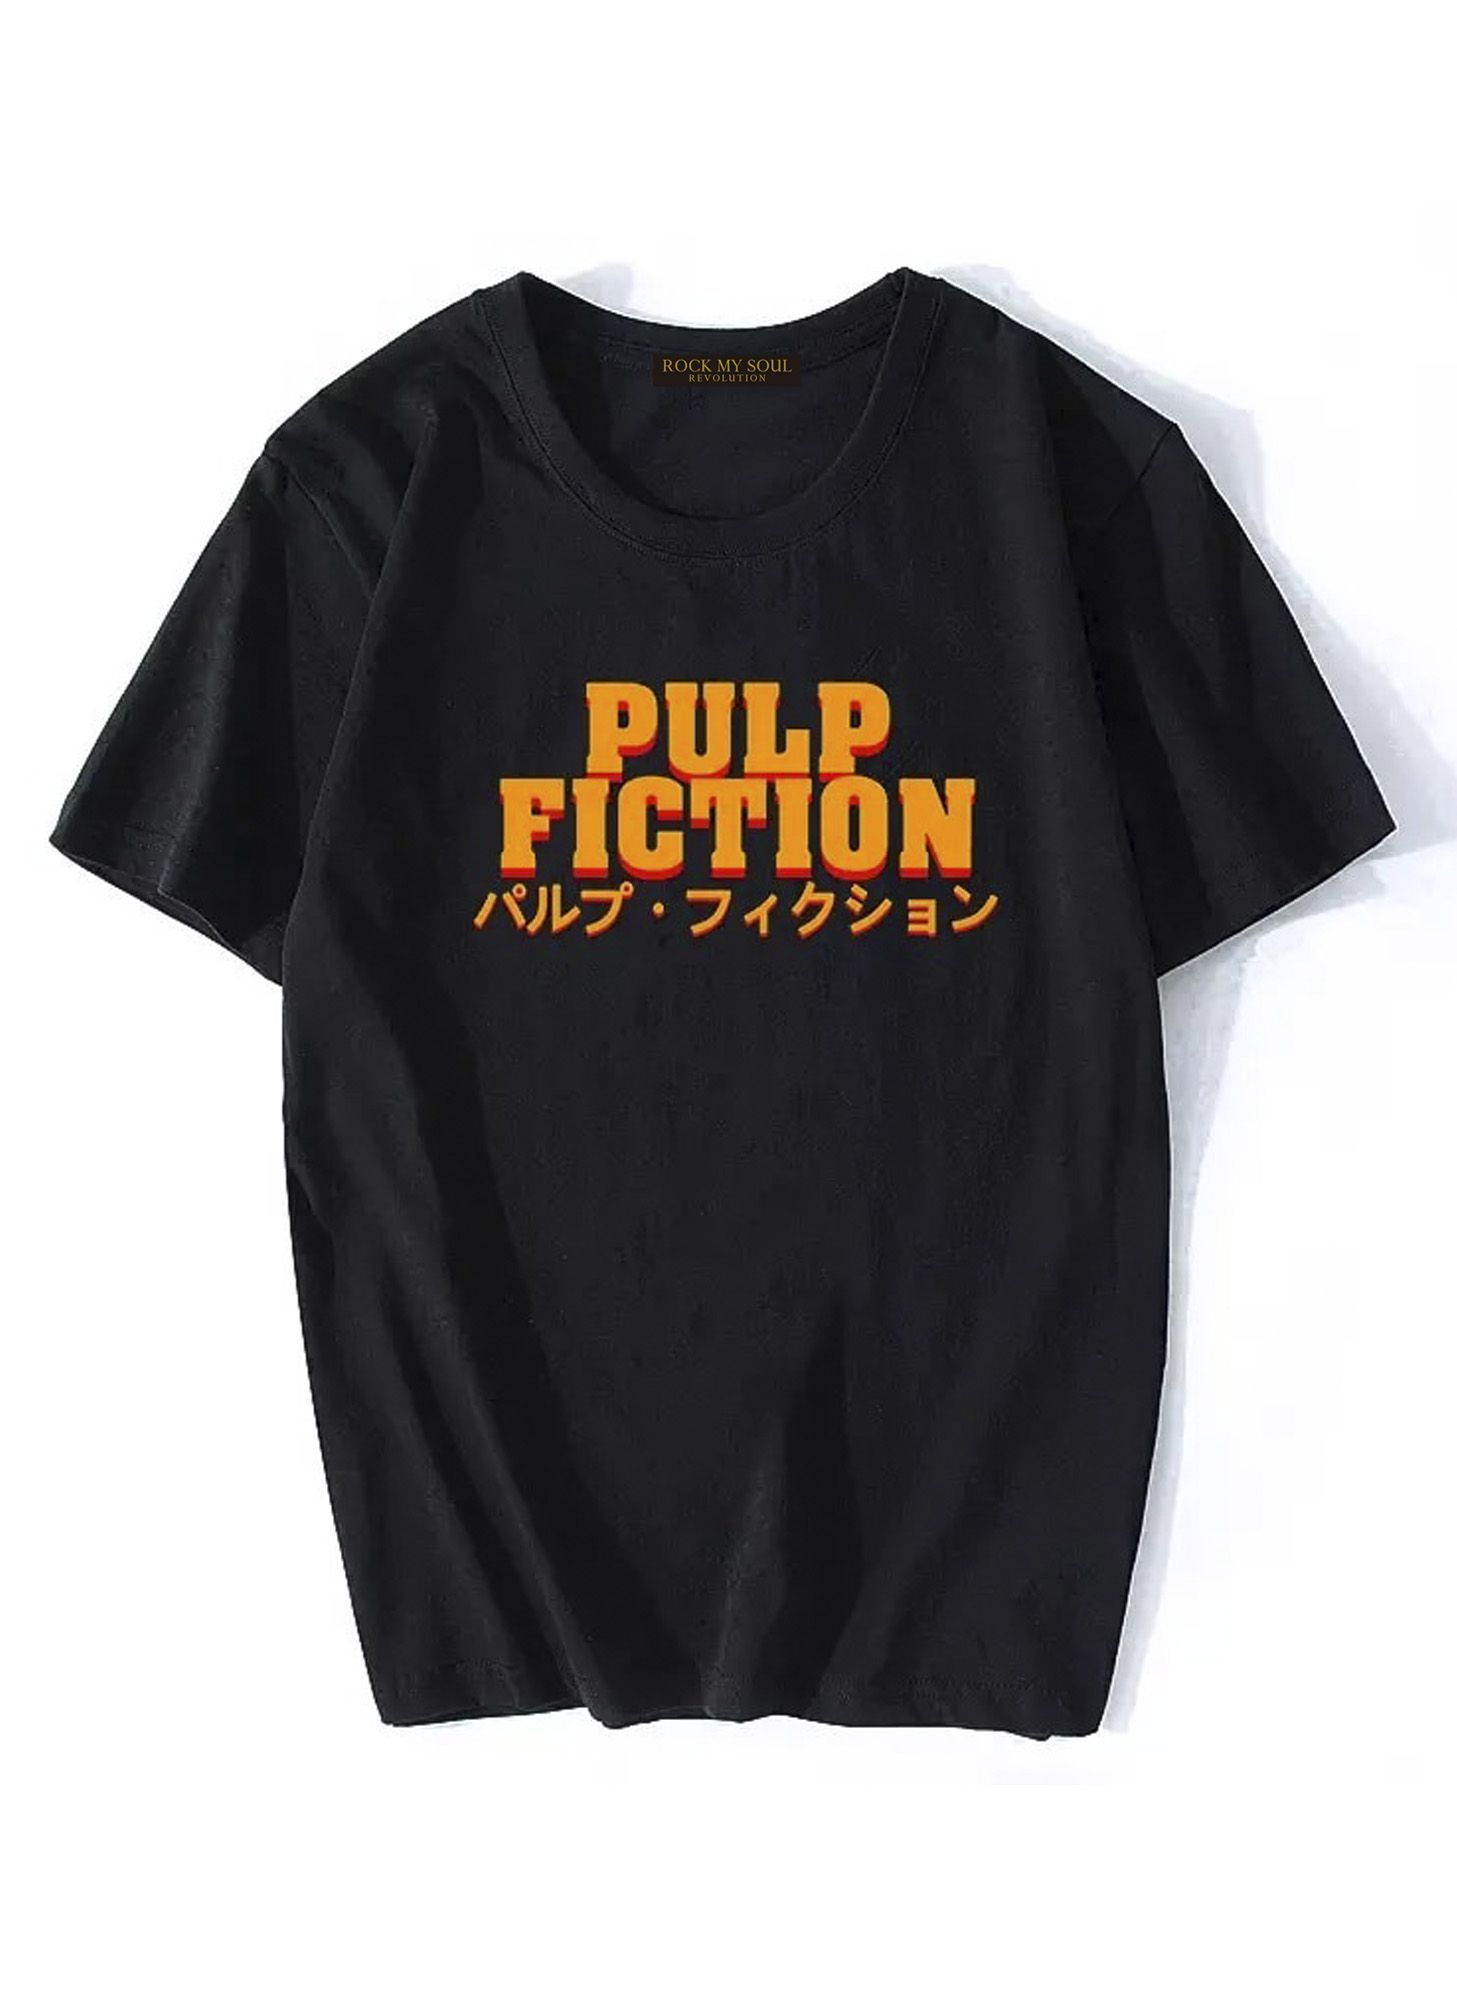 T-SHIRT ESPECIAL PULP FICTION